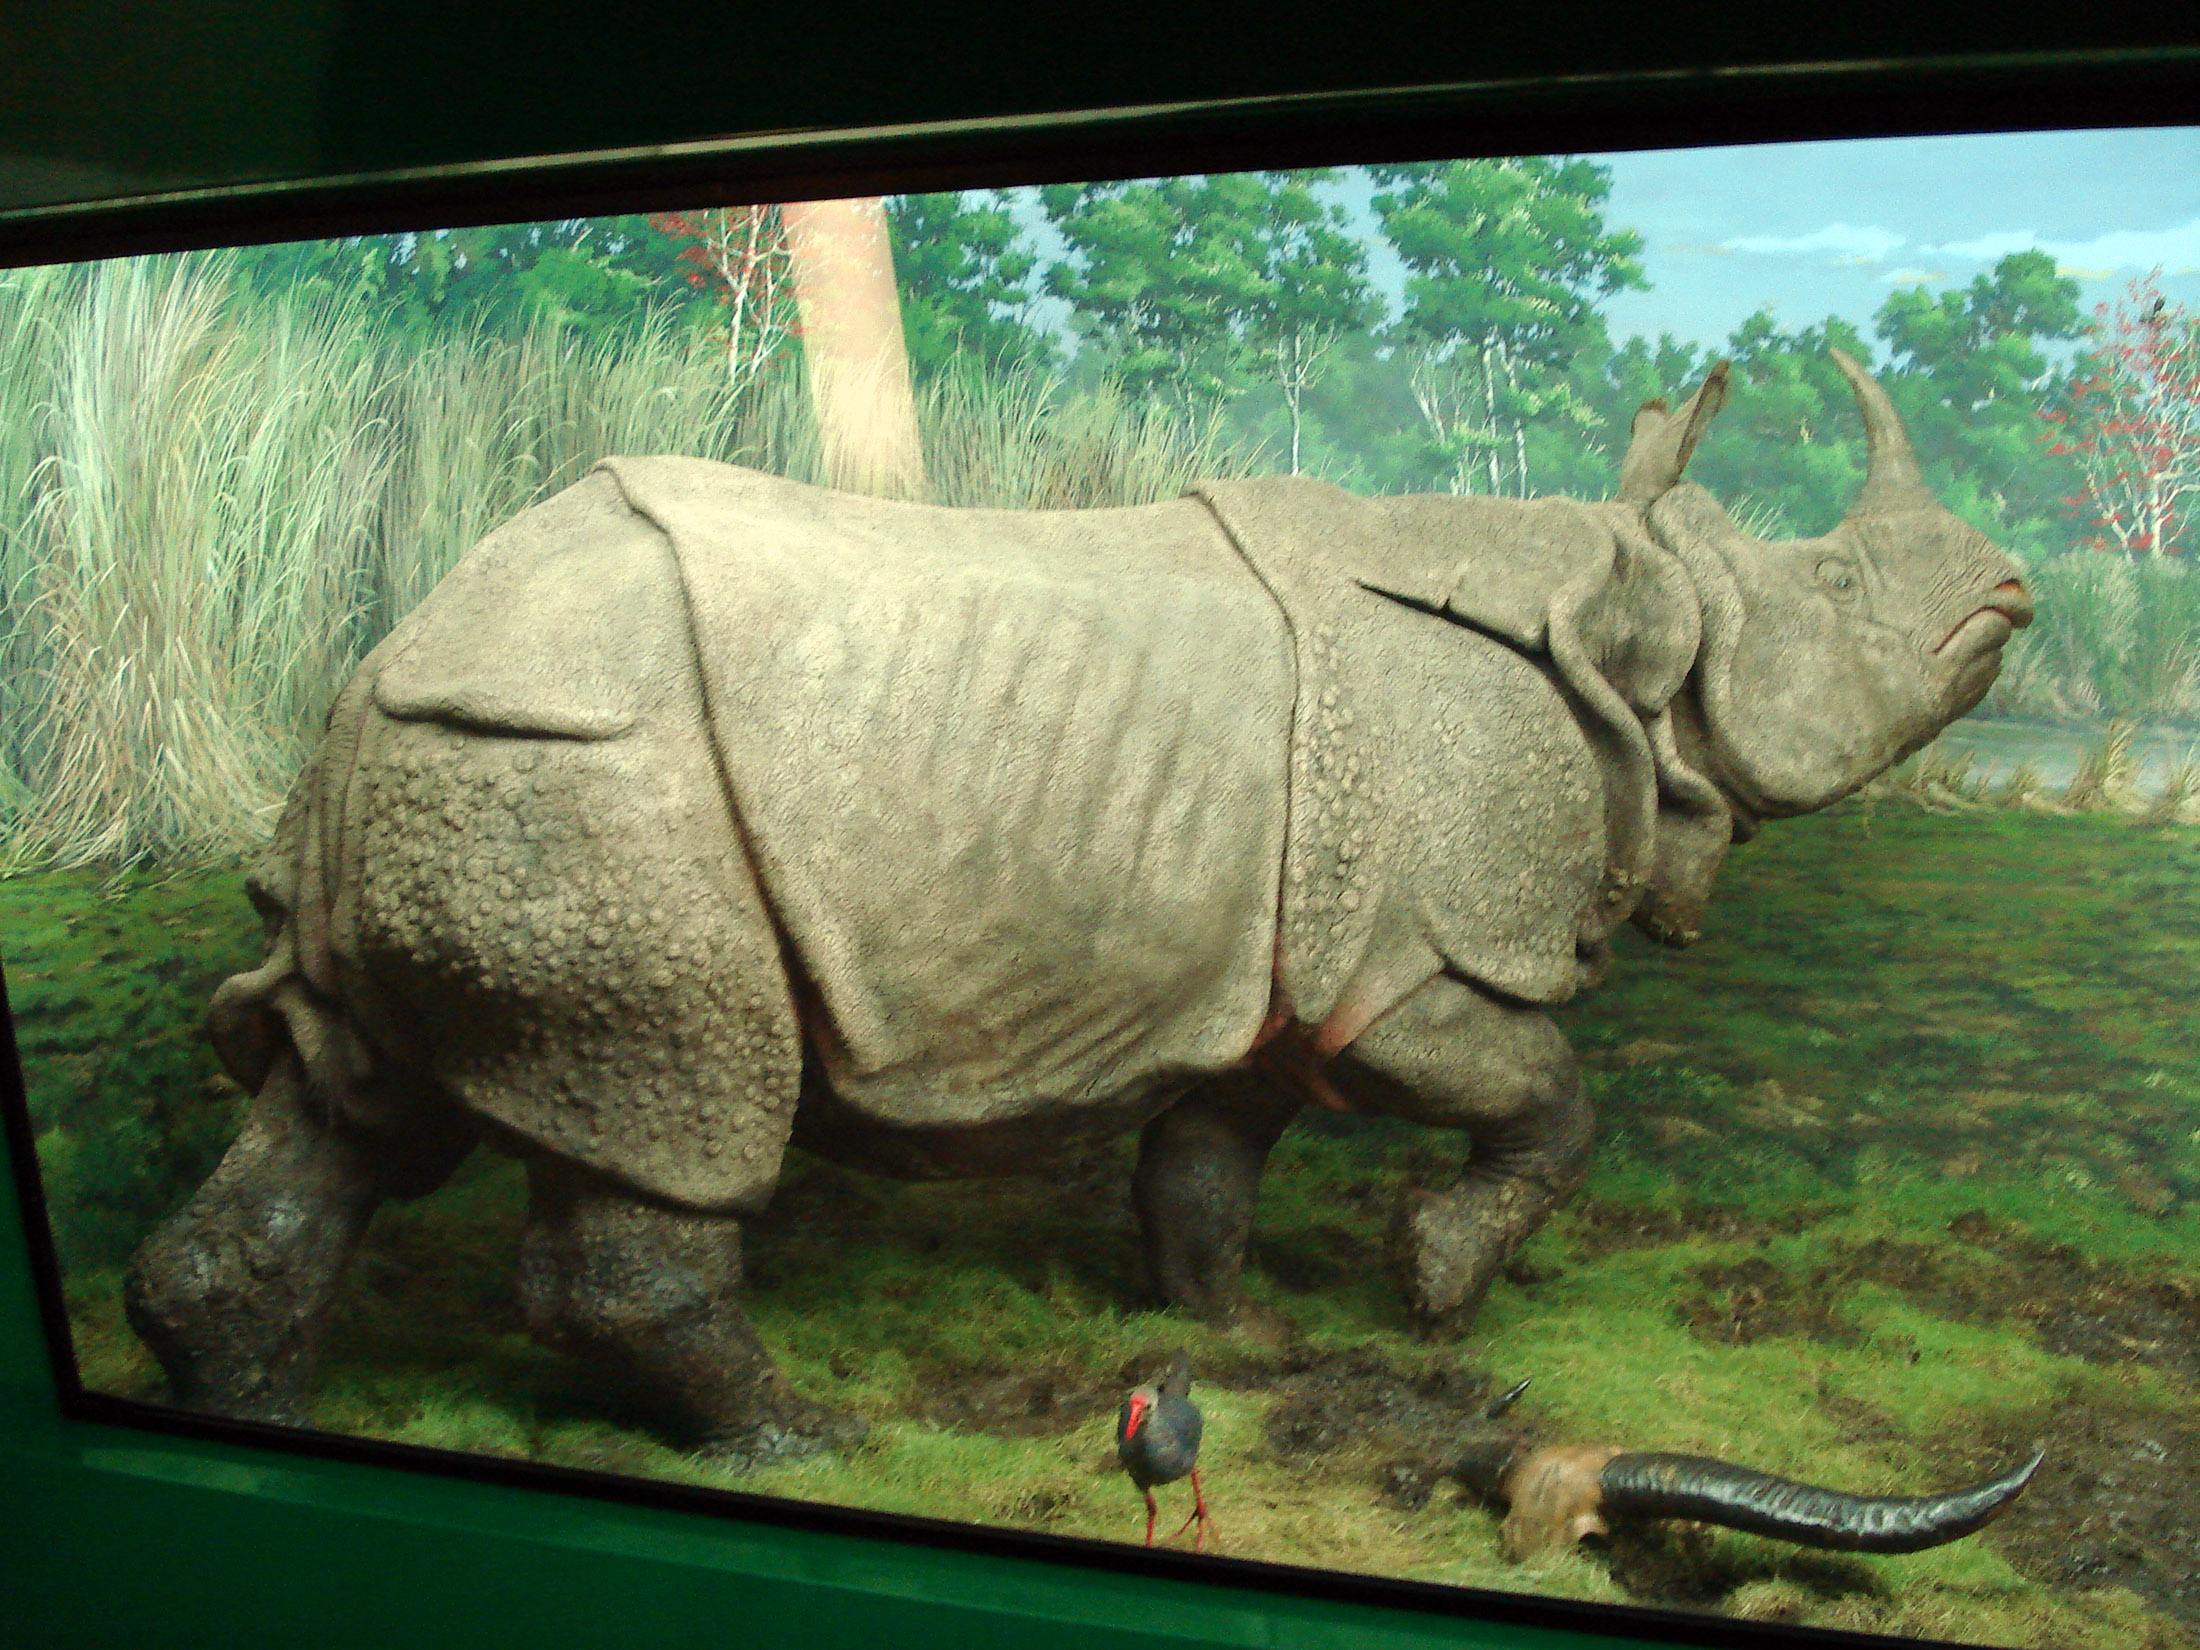 Indian Dioramas http://www.rhinoresourcecenter.com/images/Indian-Rhino-Diorama_i1195768653.php?type=tax_images&taxon=6&sort_order=desc&sort_key=year